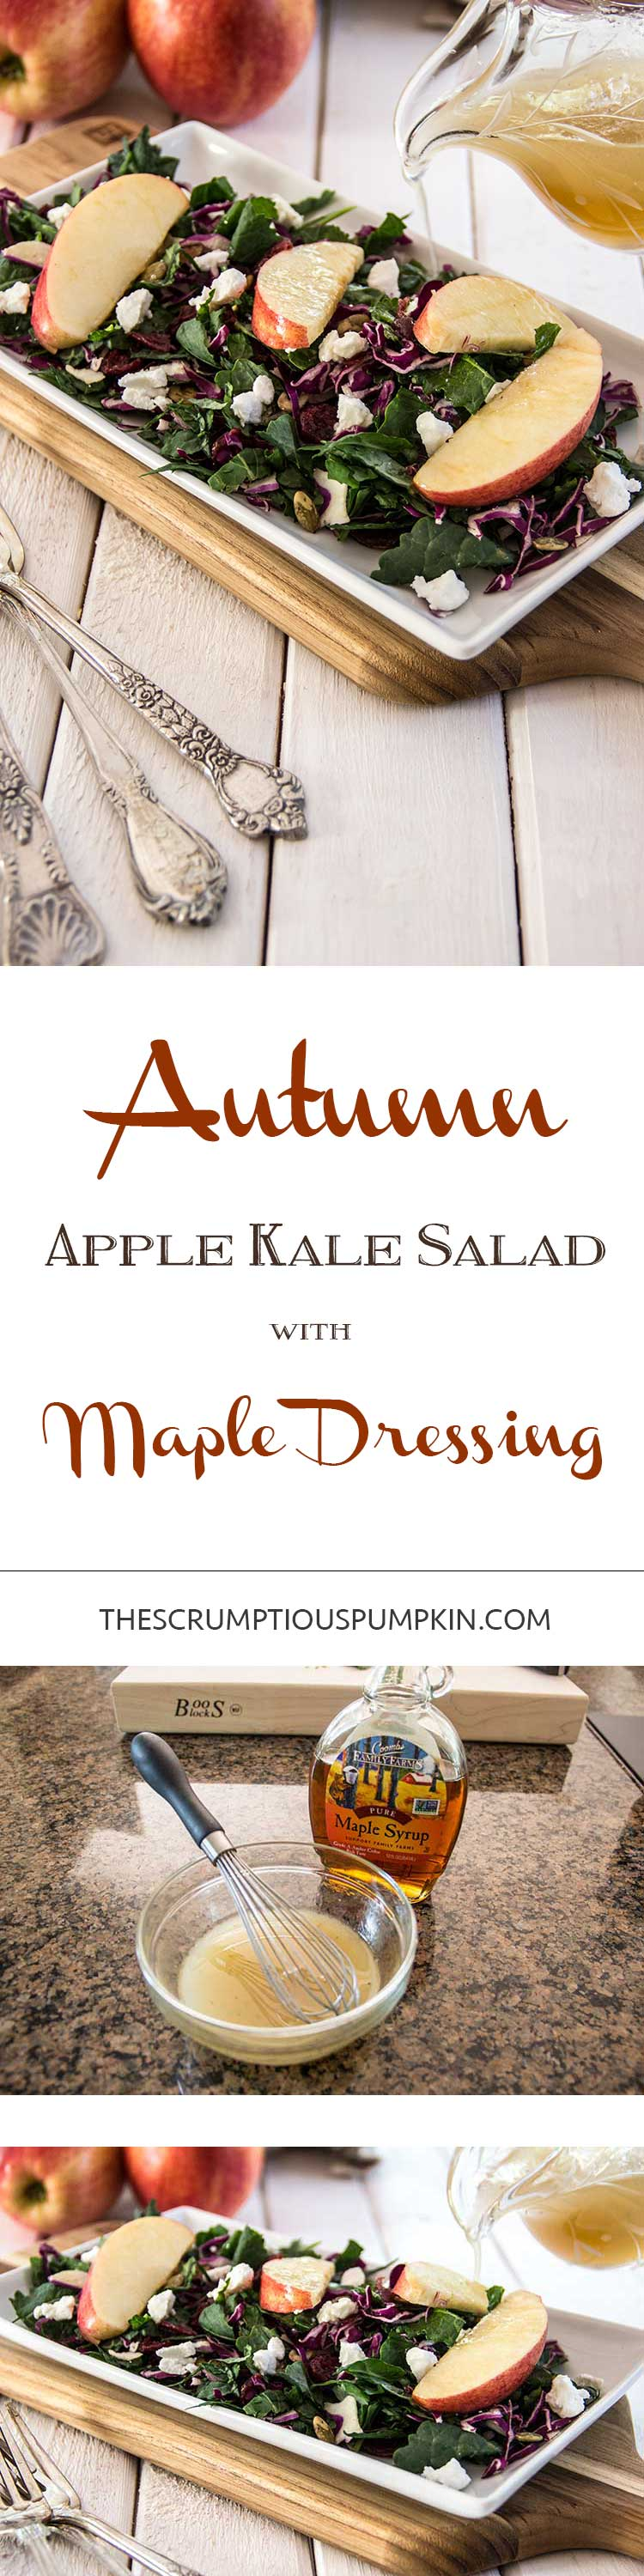 easy-autumn-apple-kale-salad-with-maple-dressing